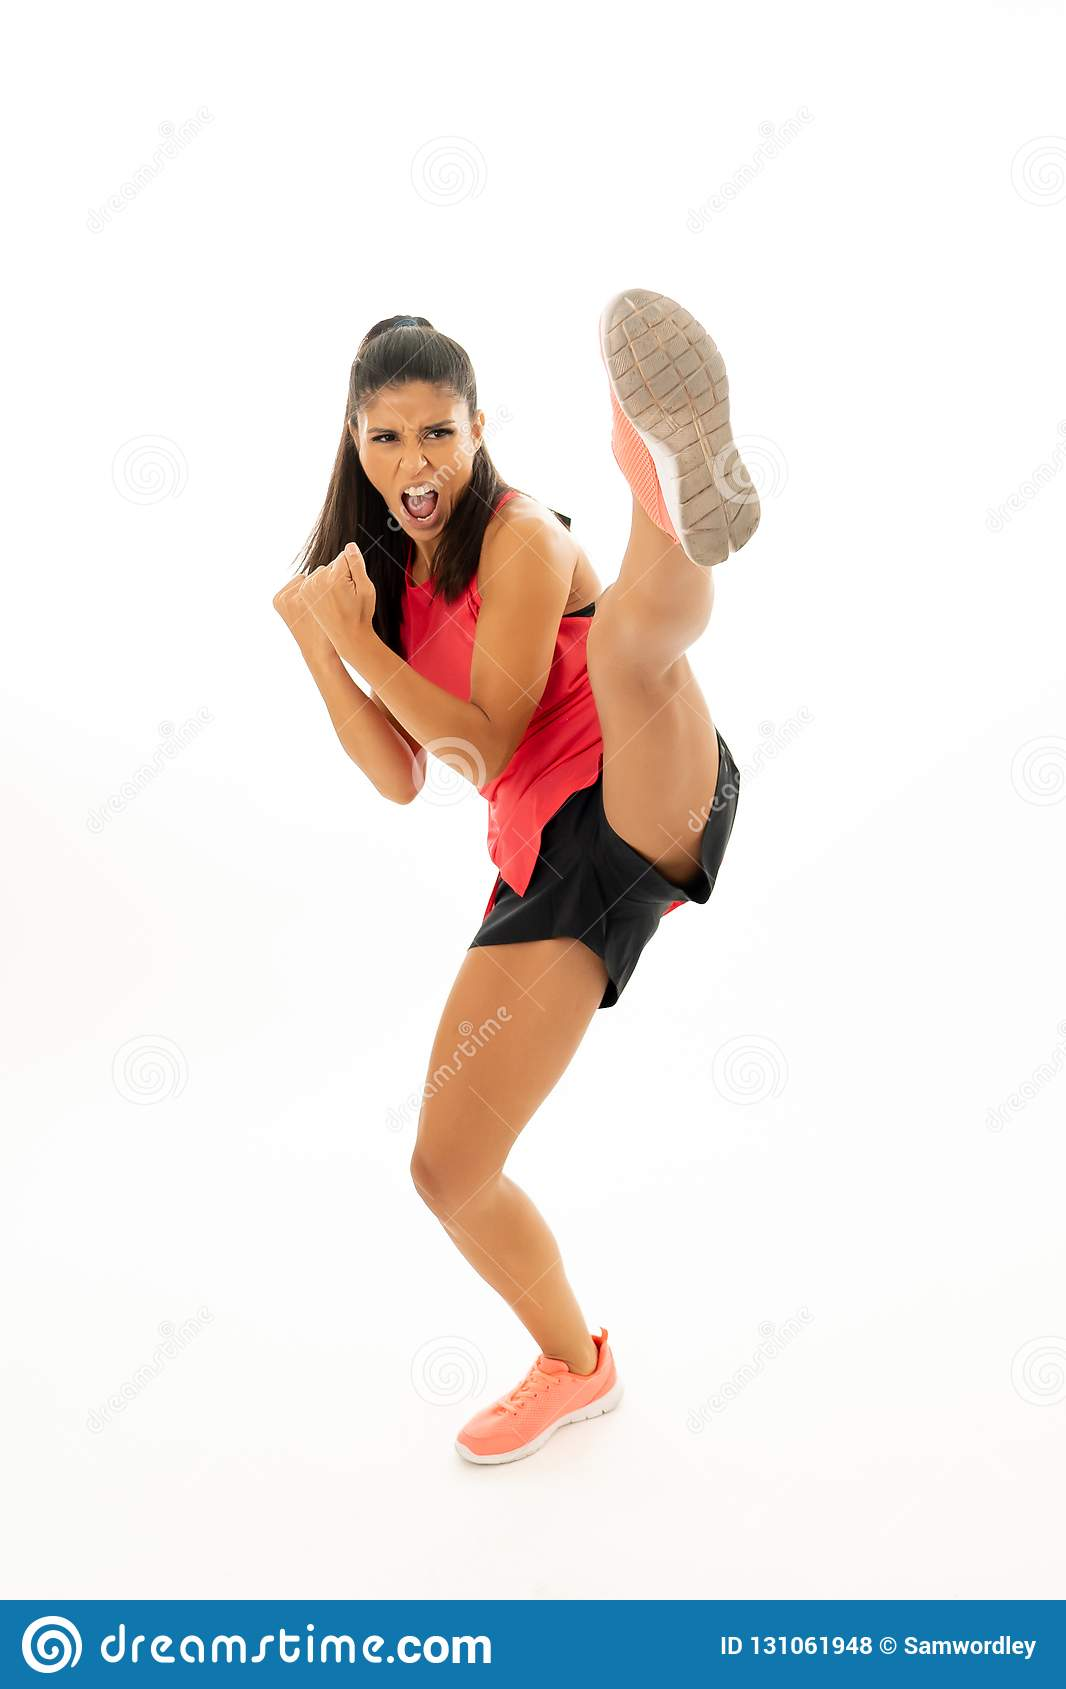 Full length shot of fit woman athlete performing a high kick martial Karate style